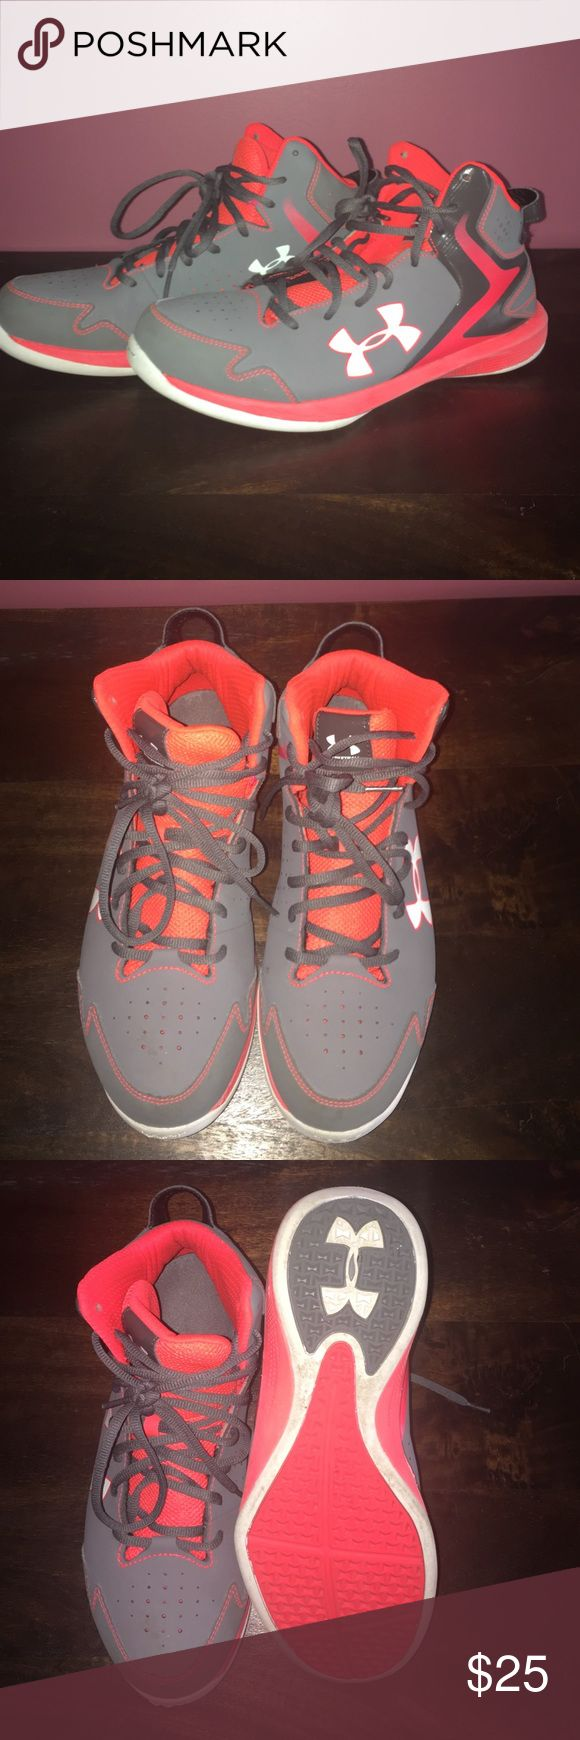 Basketball High Tops - Under Armoir Worn for only one season, well kept and clean Under Armour basketball shoes. Women's size 10, Men's size 8.5 - would make a great pair of basketball shoes for those starting for their seasons now. Under Armour Shoes Athletic Shoes